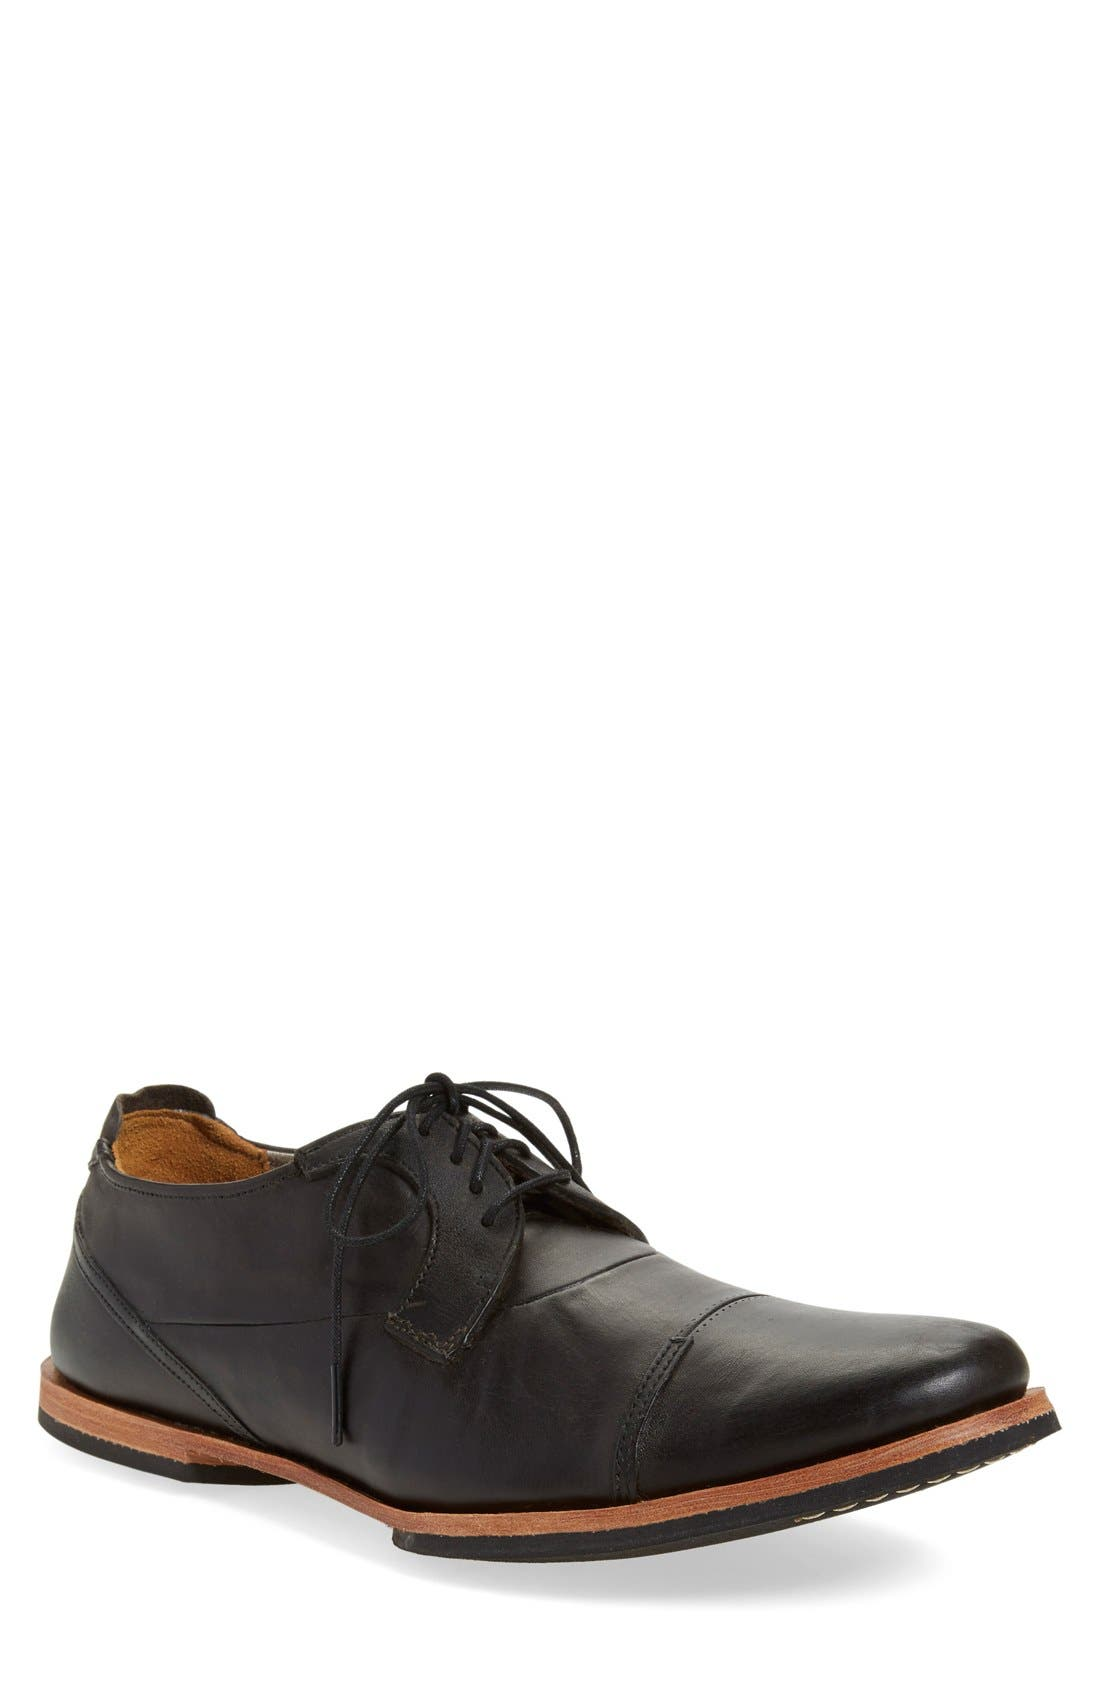 'Wodehouse Lost History' Cap Toe Oxford,                             Main thumbnail 1, color,                             Burnished Black Leather